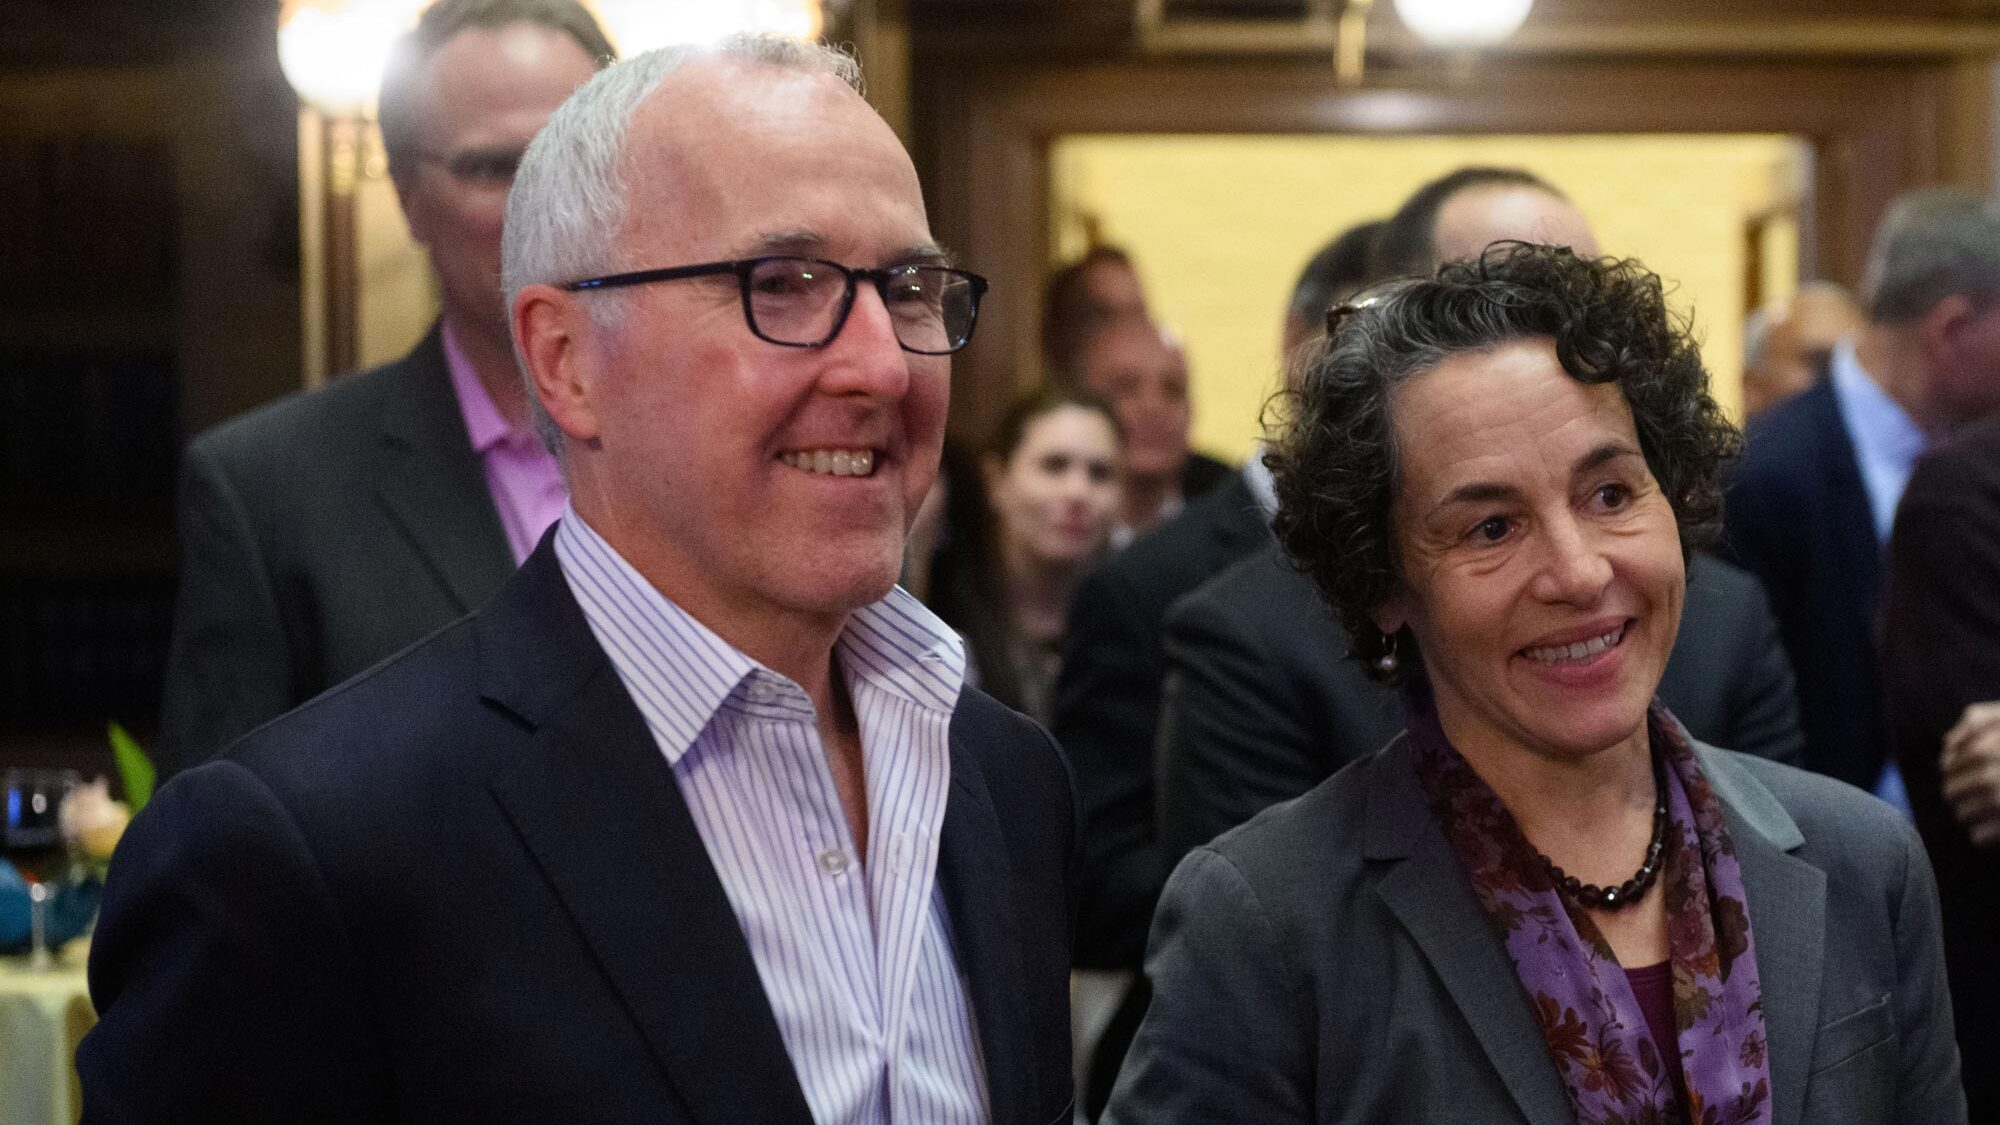 Frank McCourt and McCourt School Dean Cancian smiling at an event